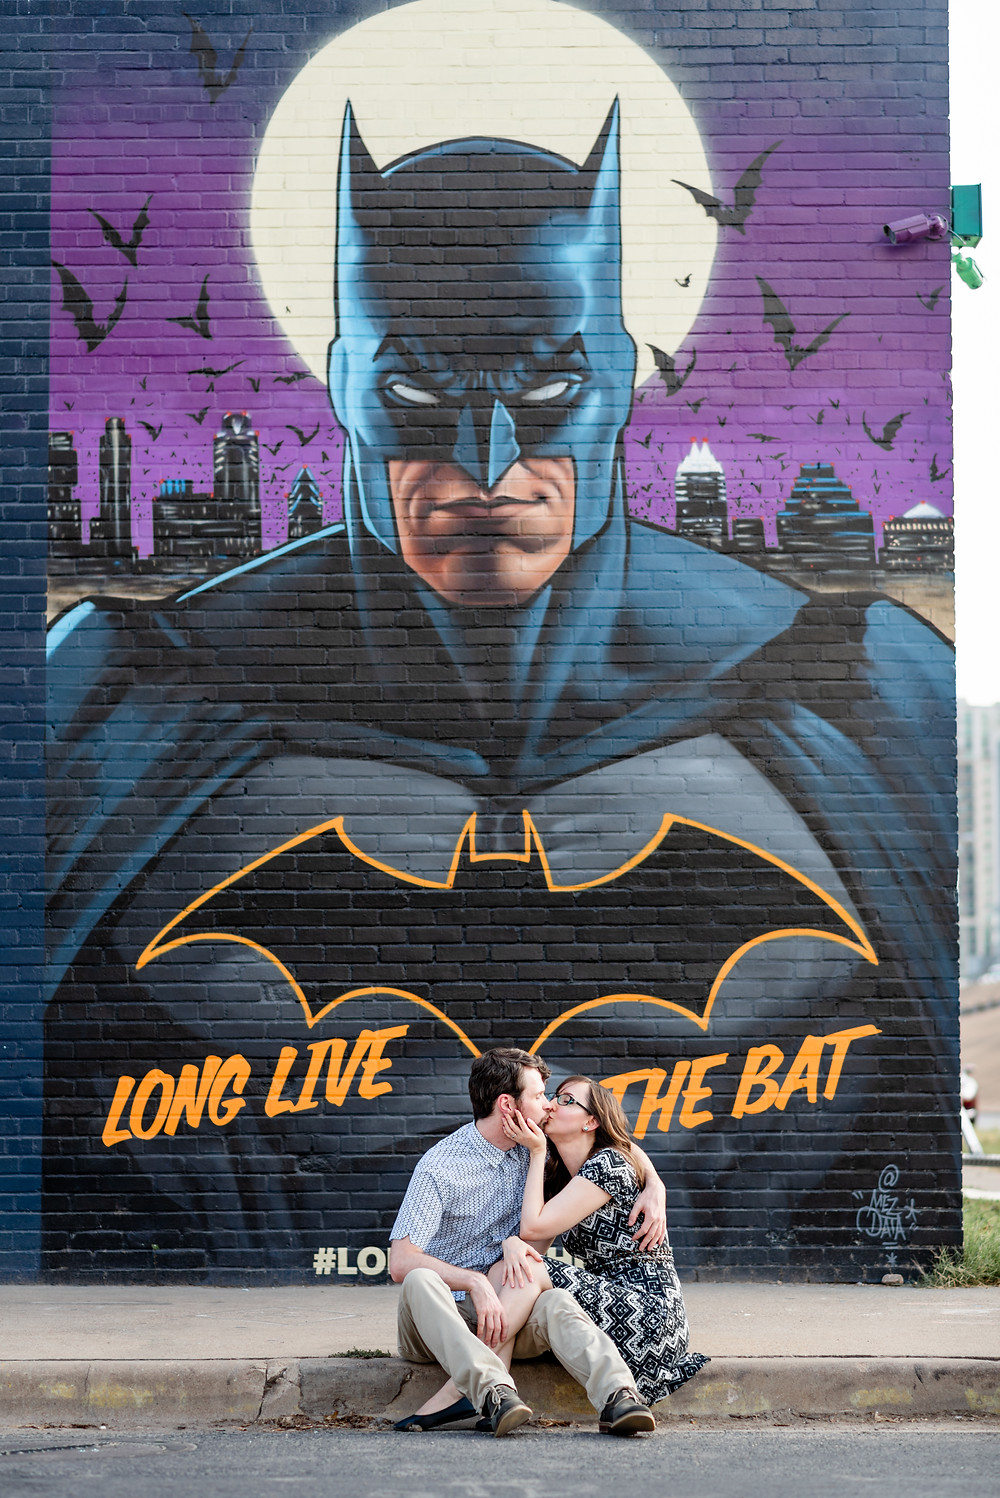 girl and guy stand in front of batman mural in austin for their engagement photos. They are sitting side by side on the ground, kissing. The girl has her hand on the guy's jawline to bring him in closer